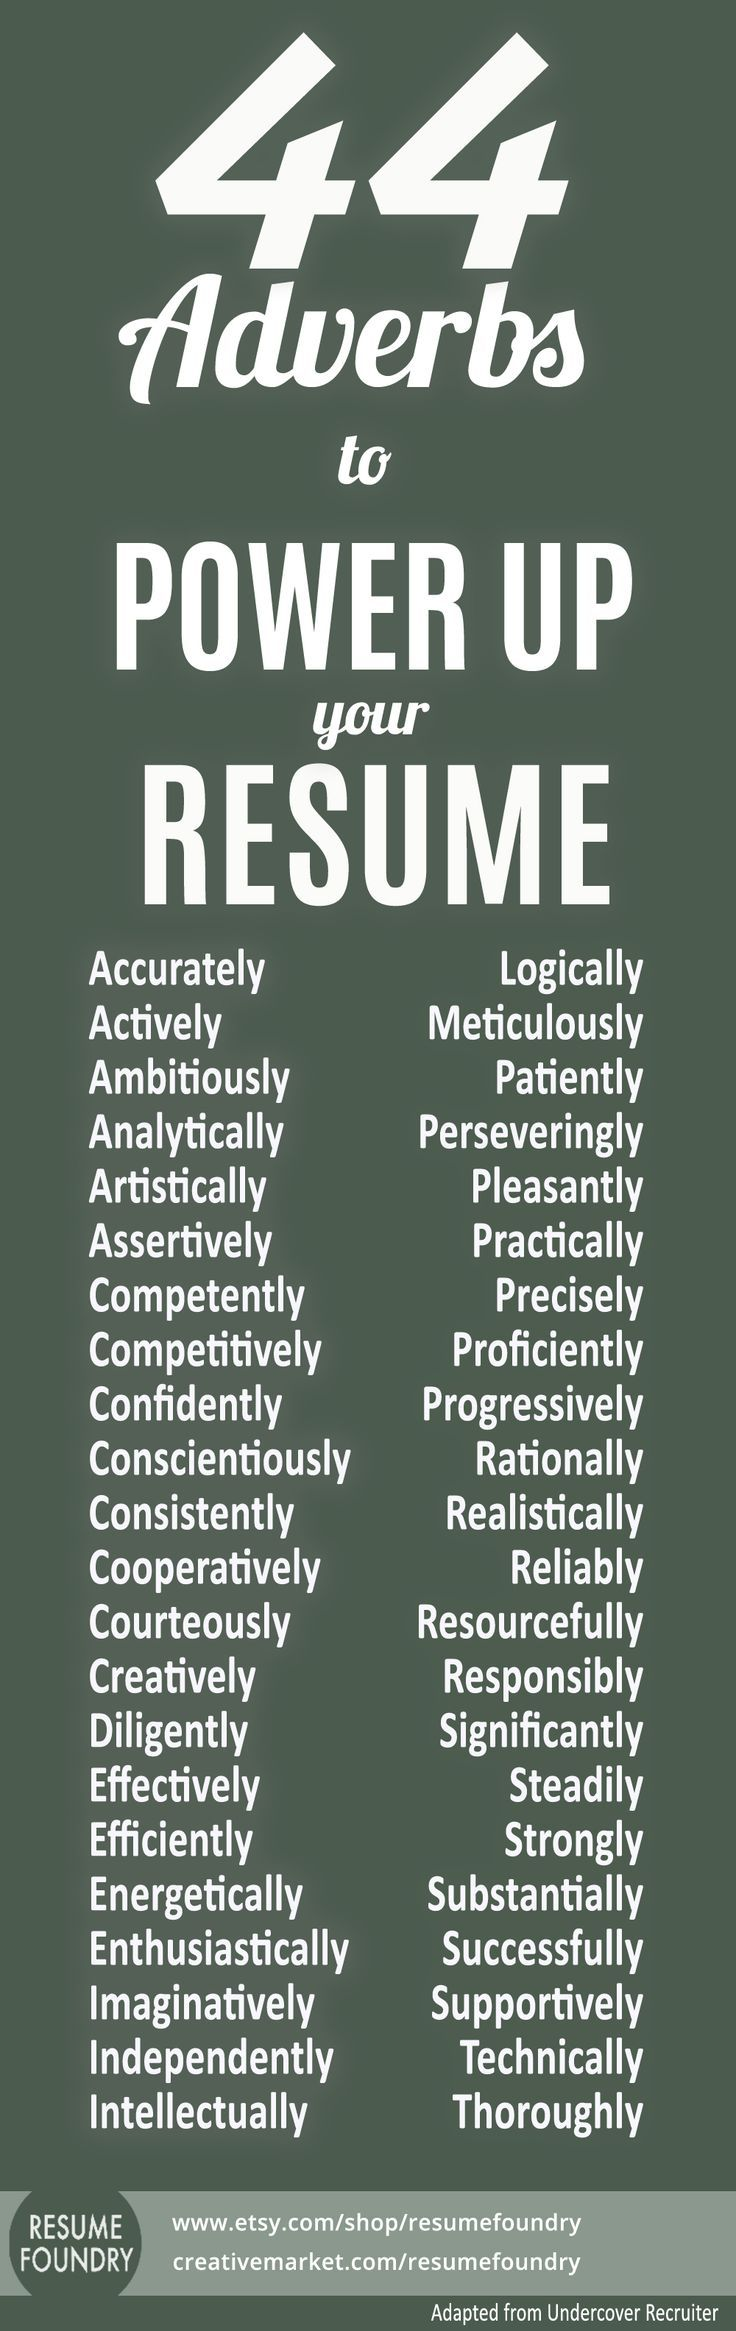 100 Great Resume Buzzwords To Include In Your Cv Http Www Aie Org